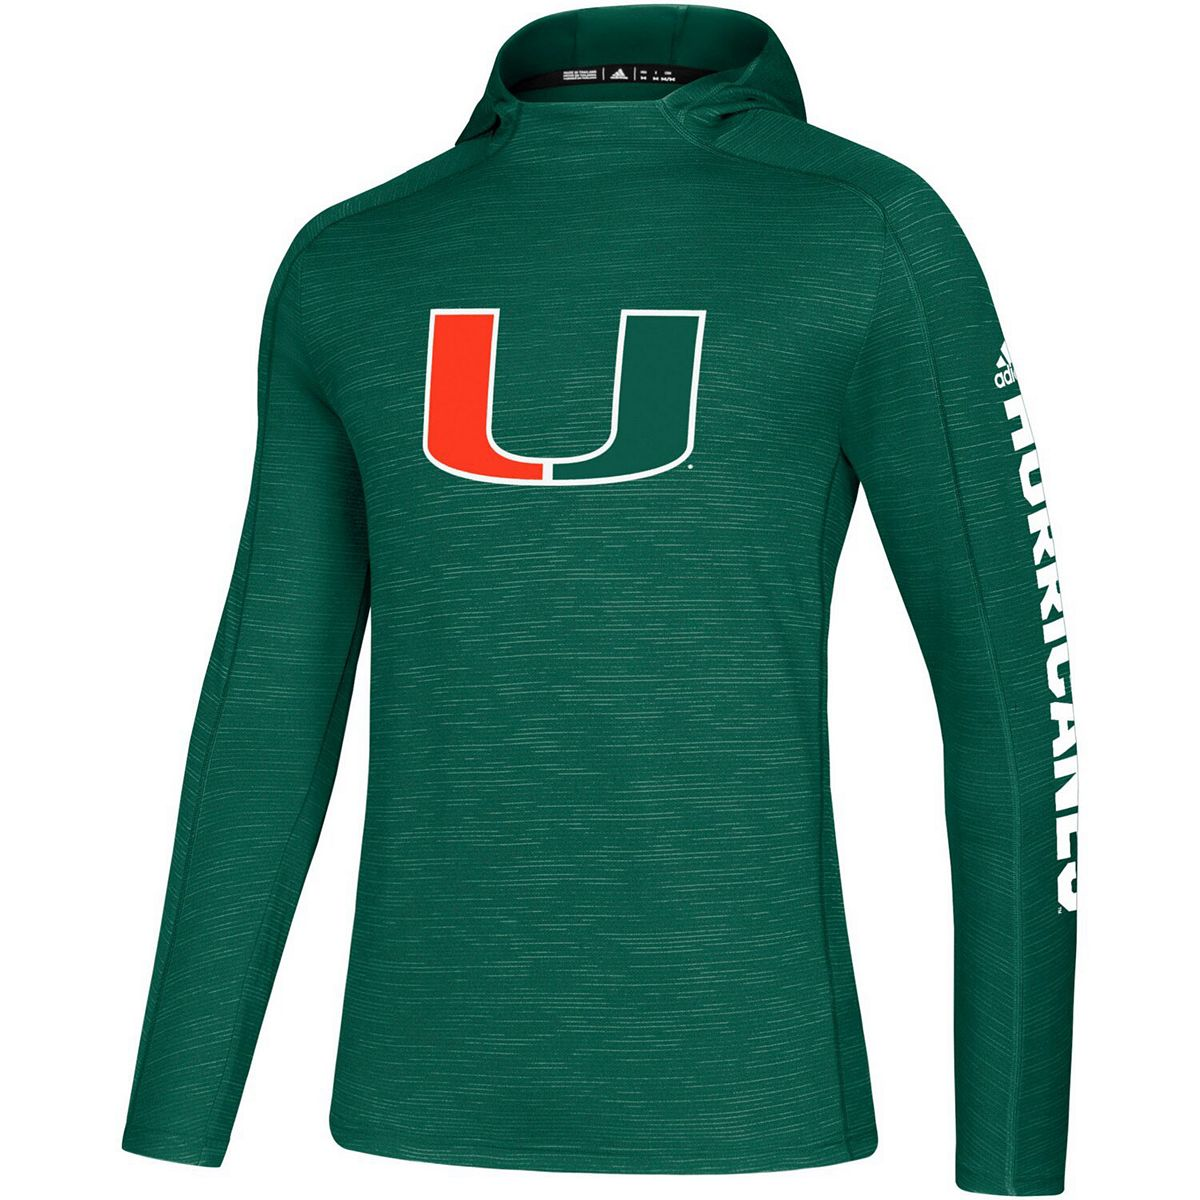 Men's adidas Green Miami Hurricanes 2019 Sideline Game Mode climalite Long Sleeve Hooded T-Shirt 8lZsZ